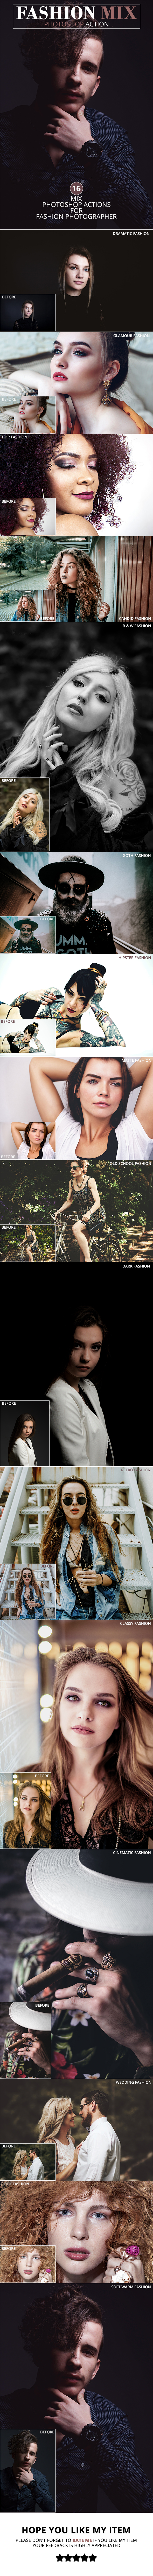 16 Fashion Mix Photoshop Actions - Photo Effects Actions